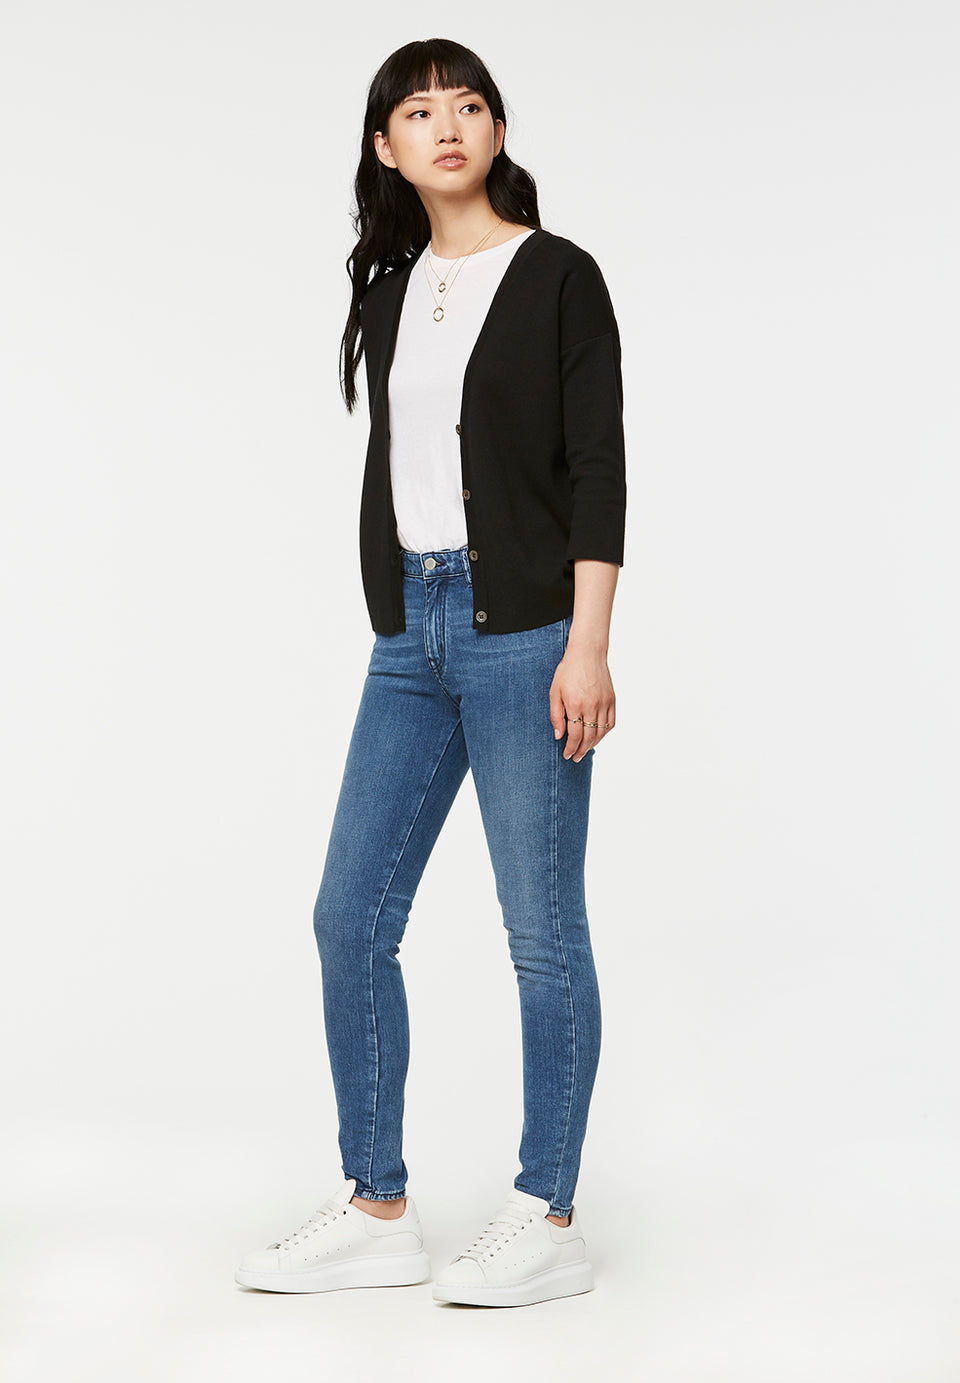 Arlette Cardigan in Black